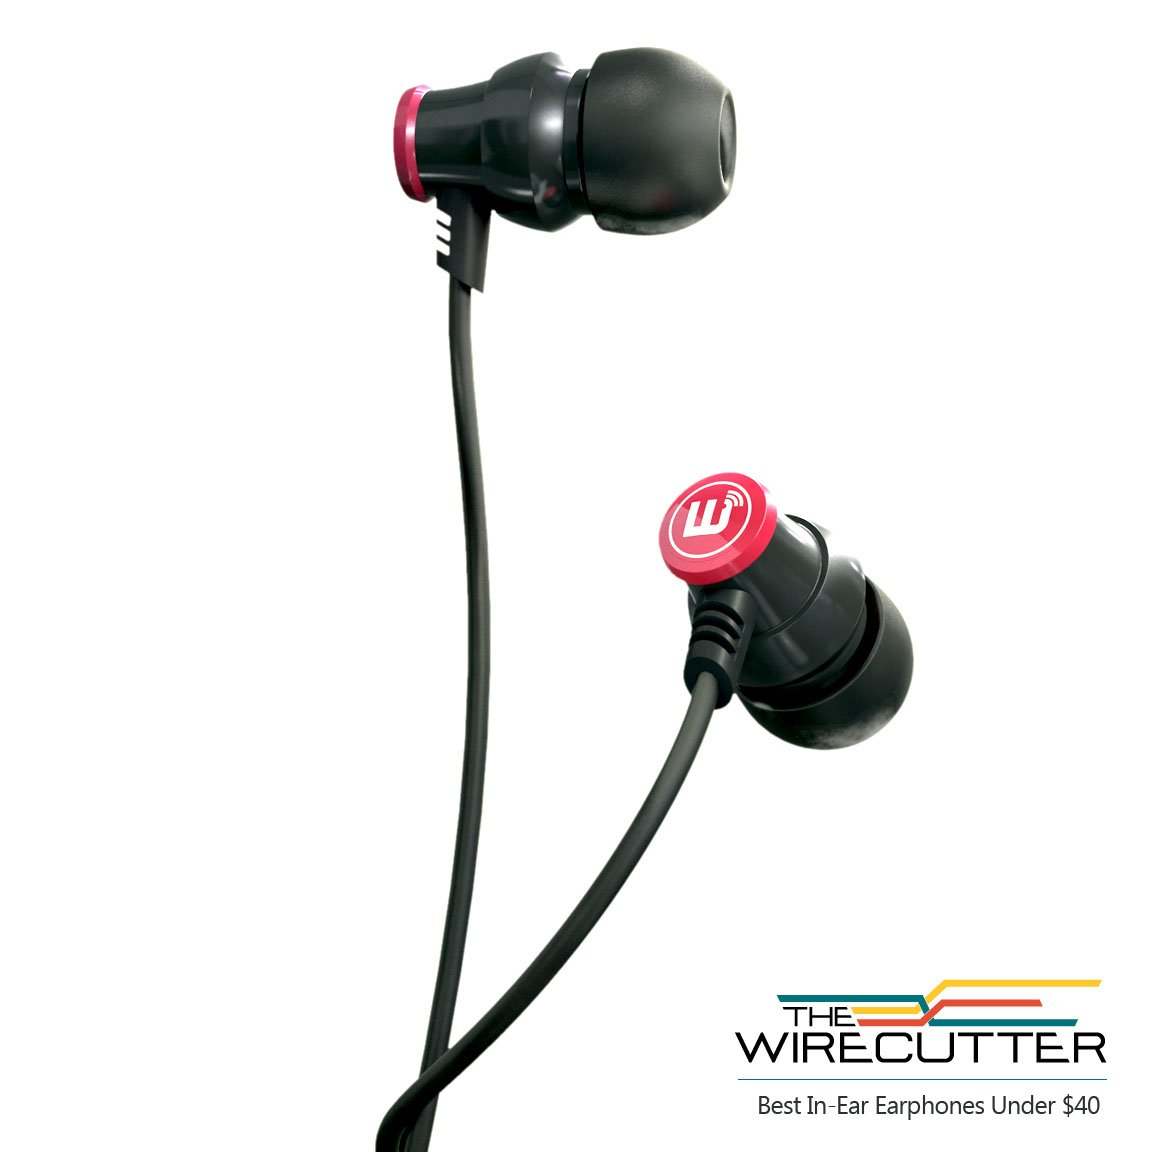 Brainwavz Delta Black IEM In Ear Earbuds Noise Isolating Earphones Remote Headset Apple iPhone & Android